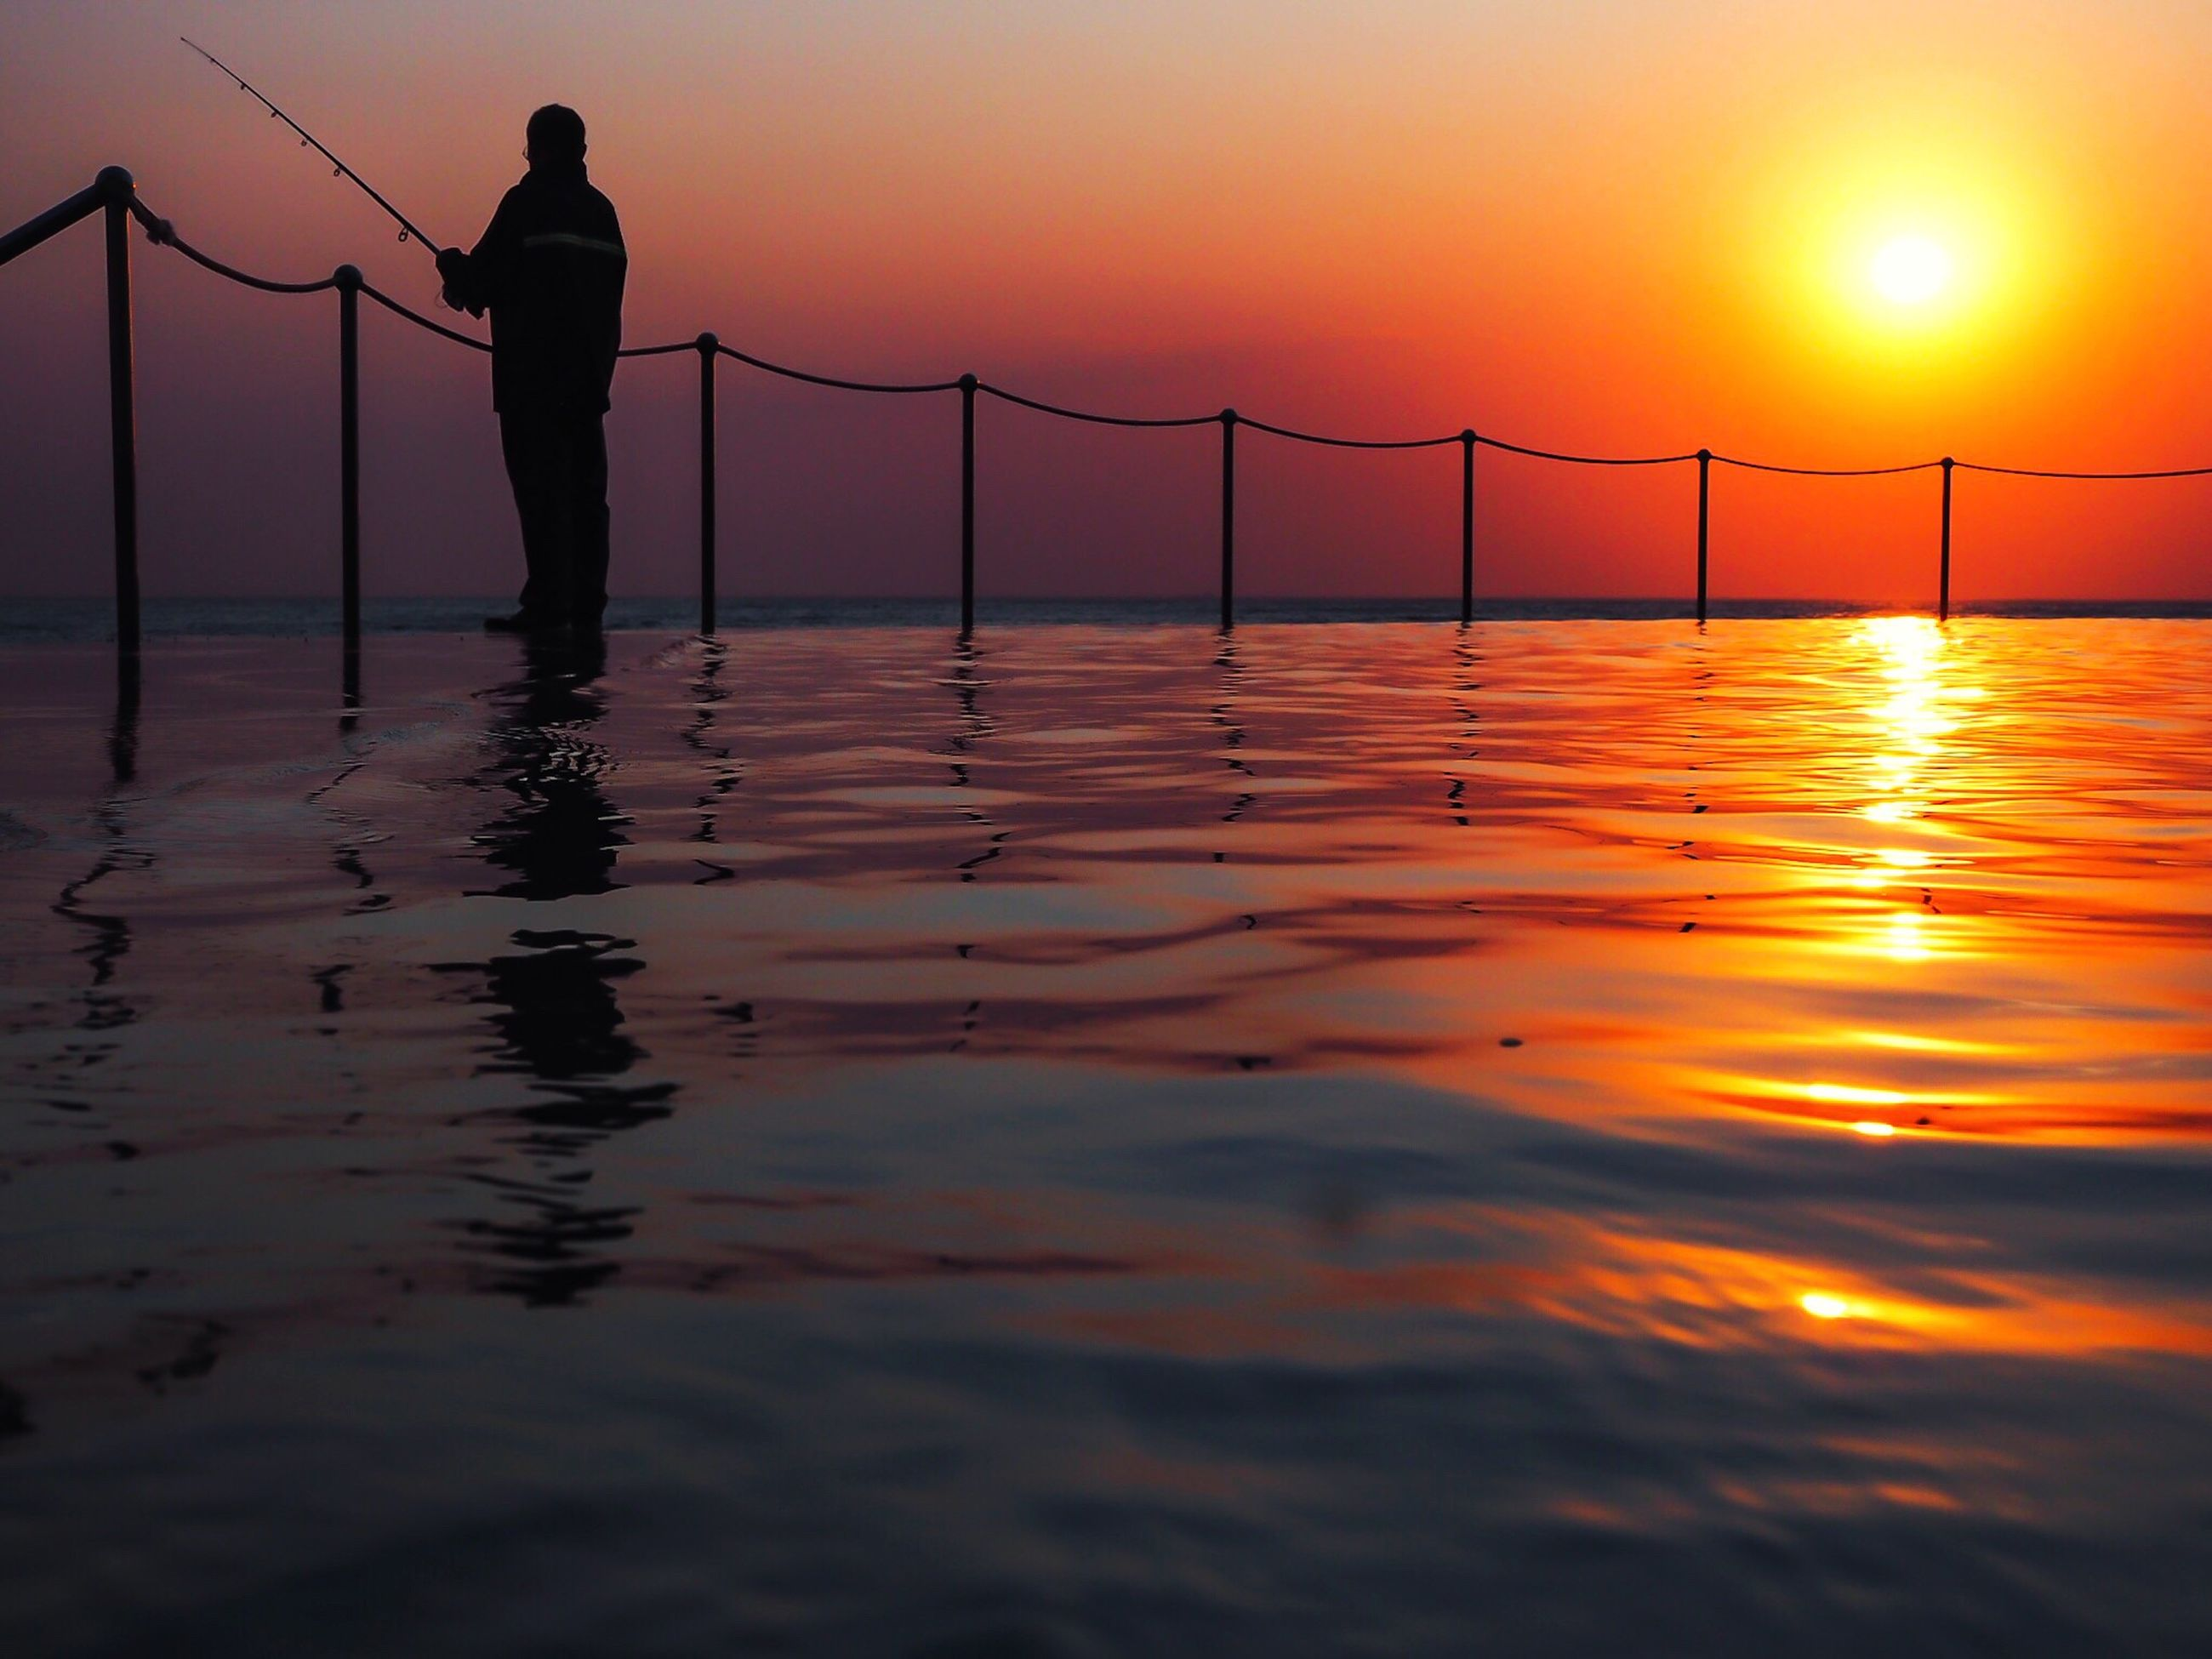 water, sunset, real people, silhouette, sea, waterfront, nature, reflection, beauty in nature, men, scenics, sky, one person, standing, outdoors, fishing, lifestyles, fisherman, full length, horizon over water, occupation, working, fishing pole, day